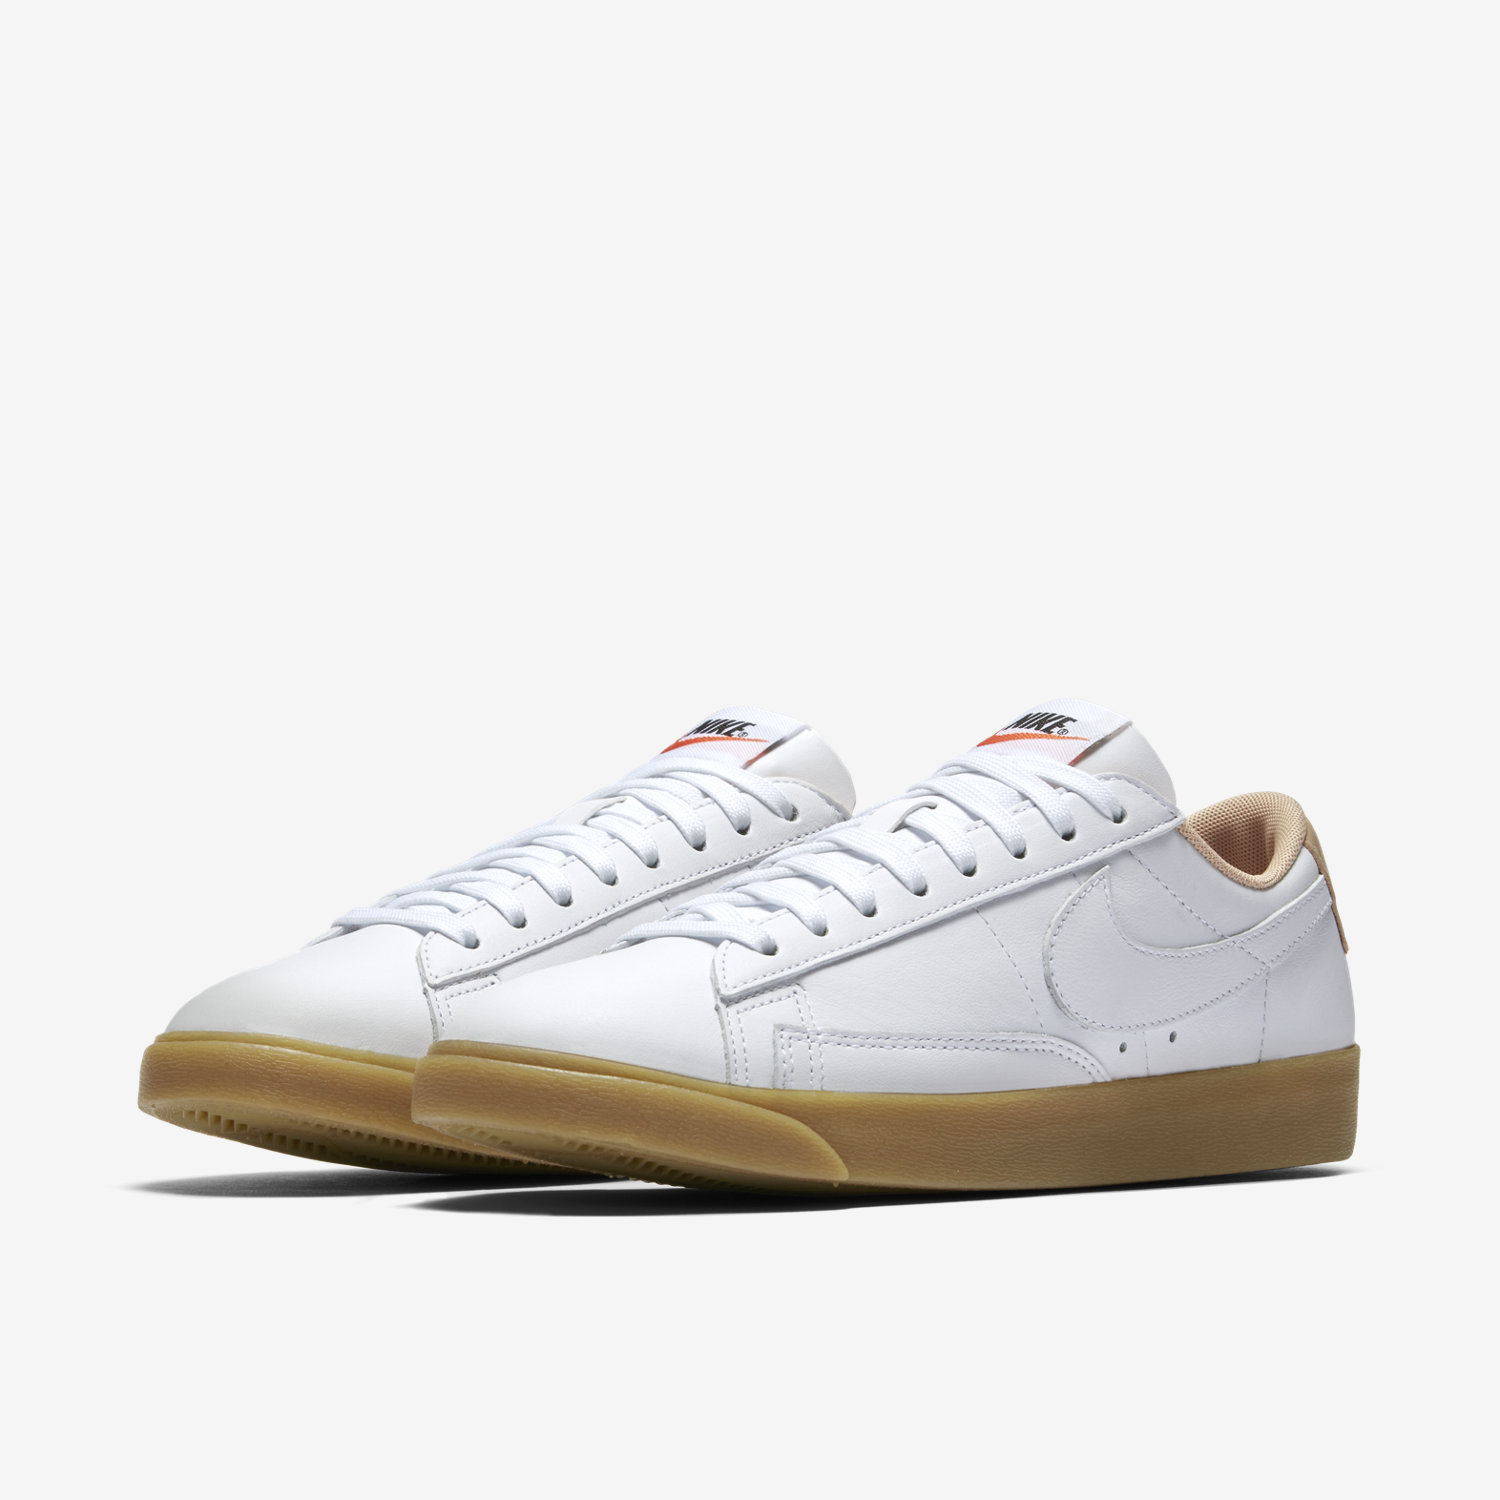 Nike Blazer Low Classic AC ND Suede chaussures Beige Rouge Homme Nike Blazer Rouge Cuir